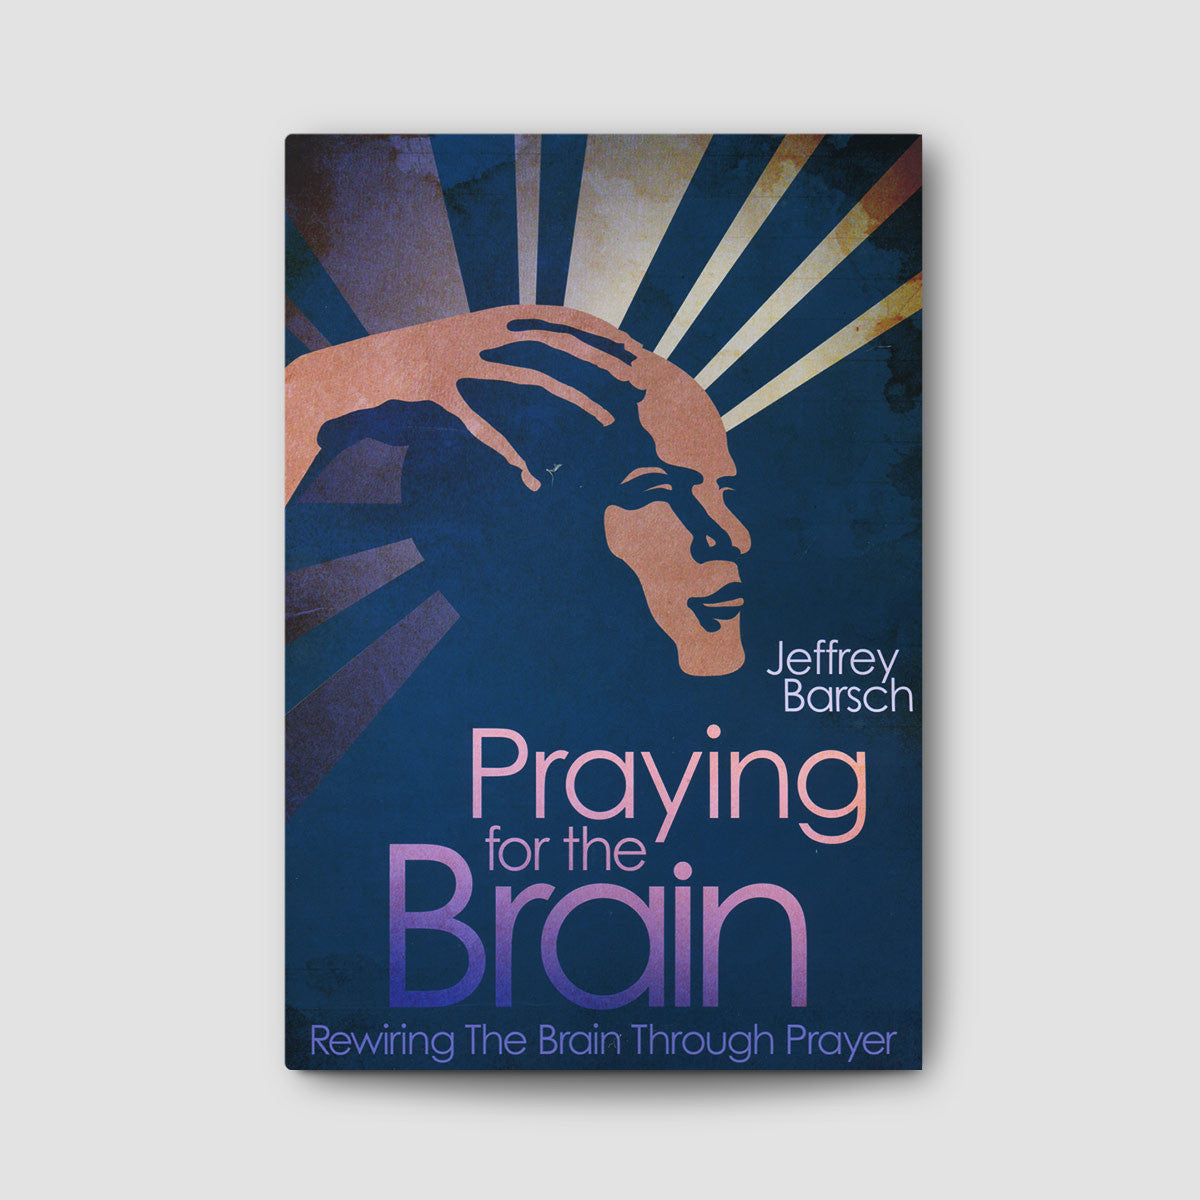 Praying for the Brain: Rewiring the Brain Through Prayer